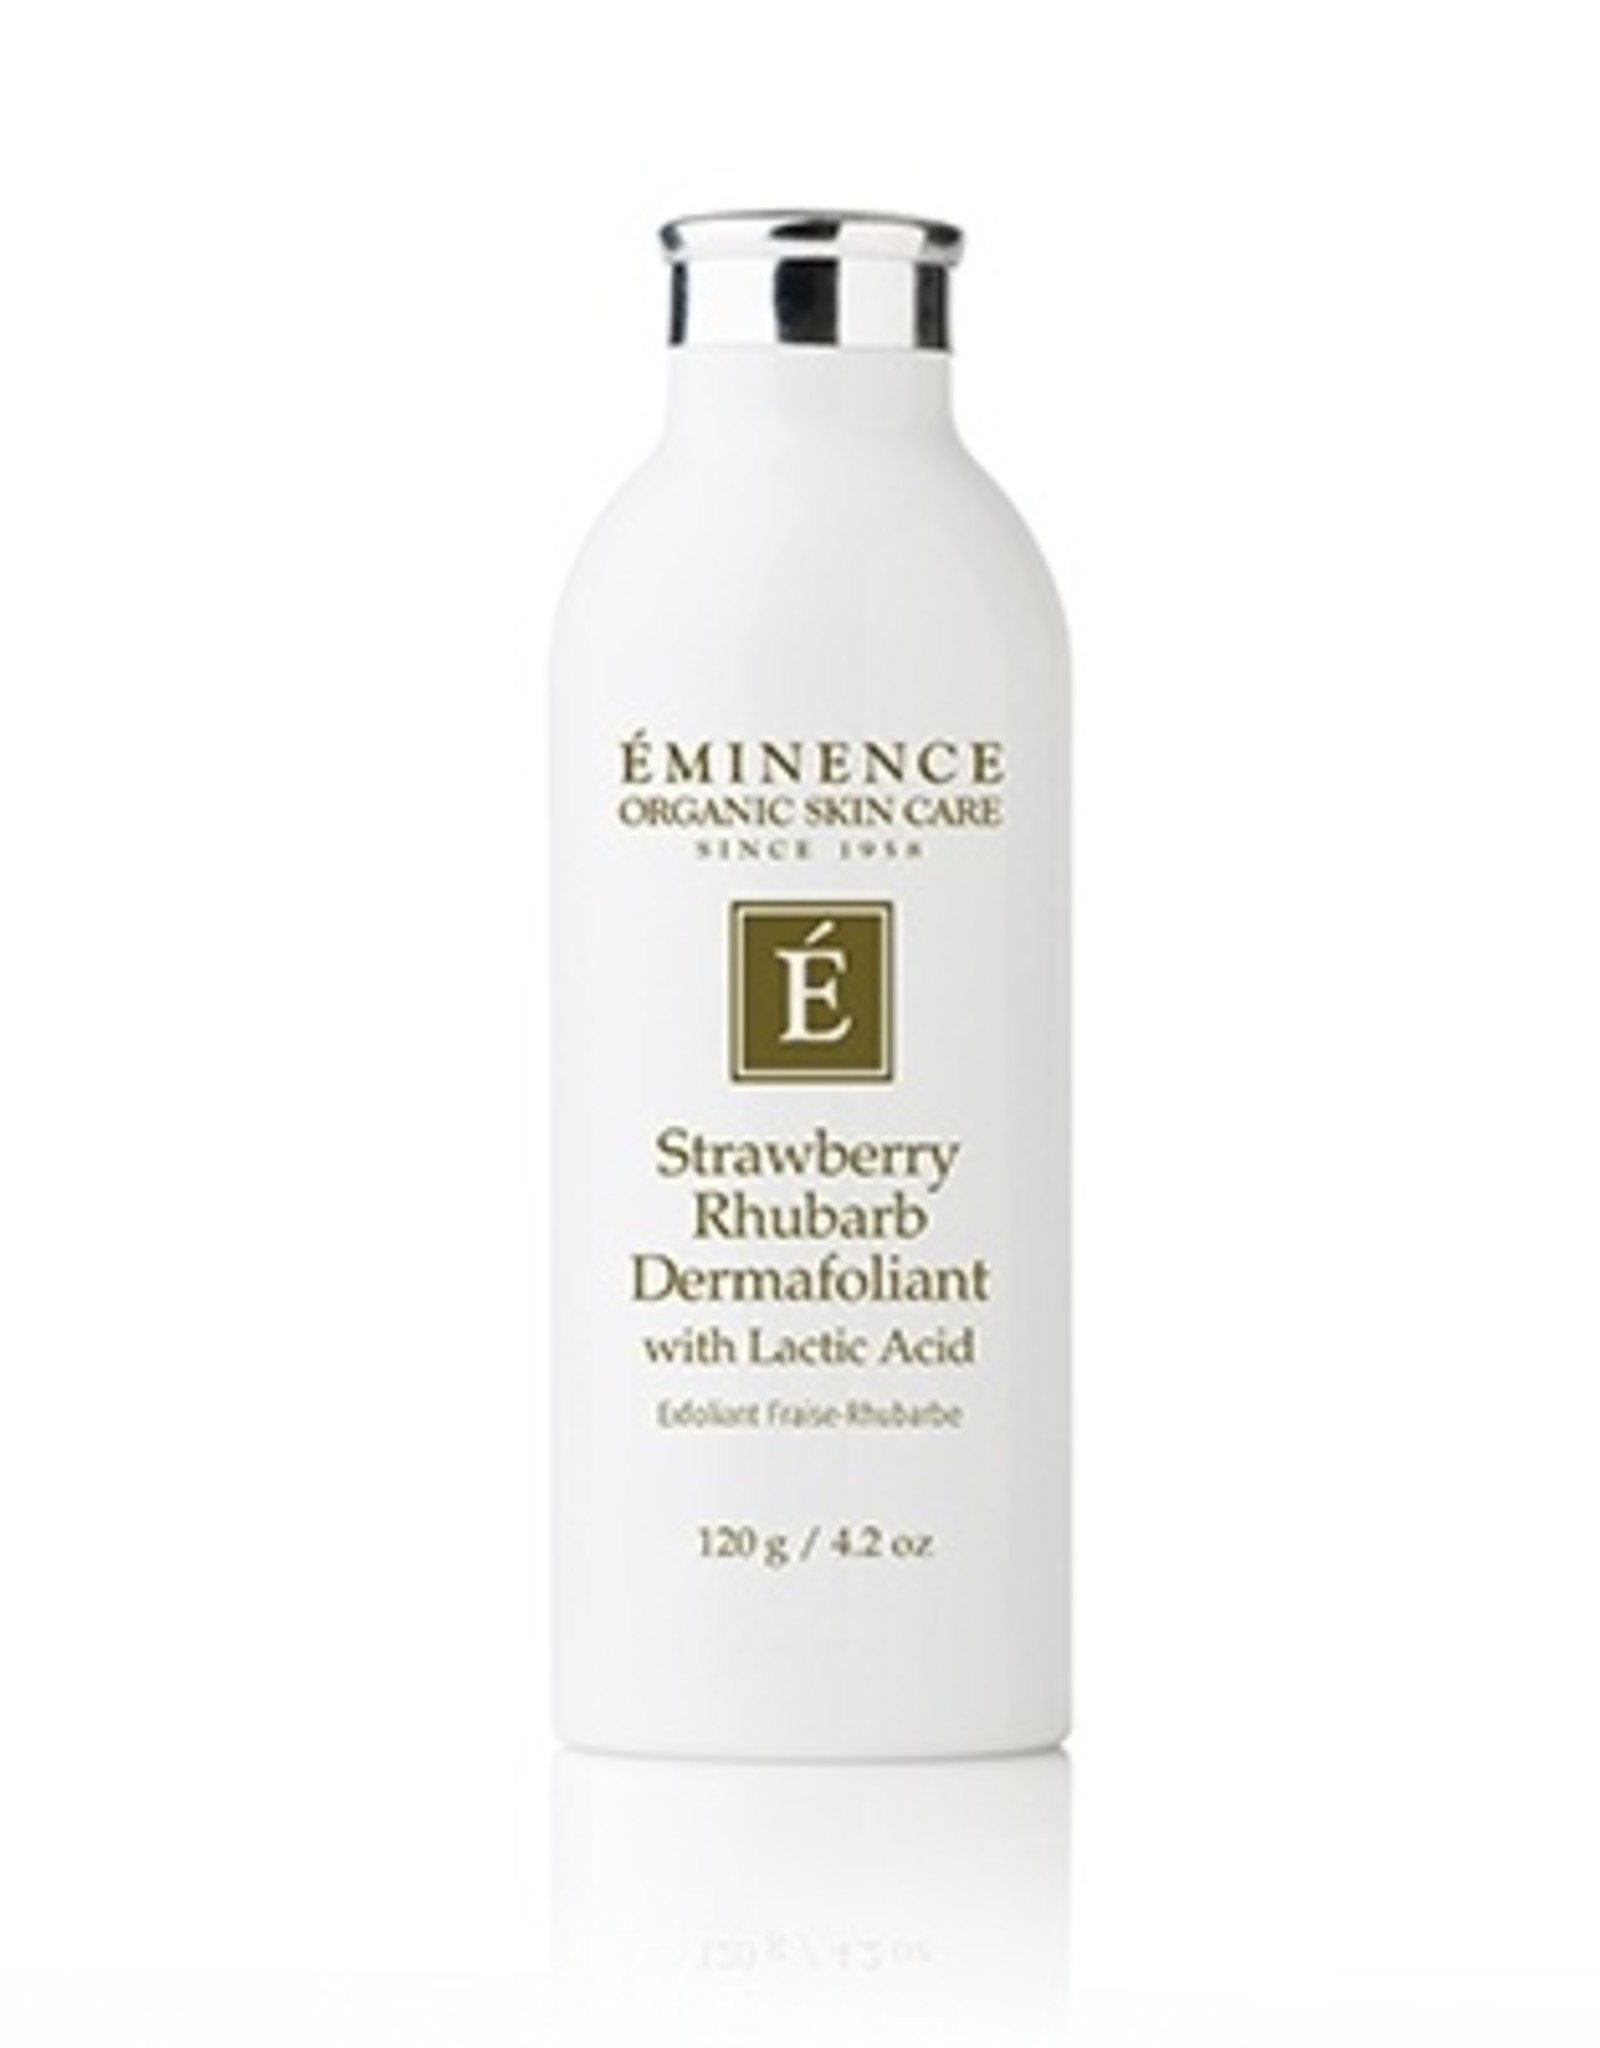 Eminence Organic Skin Care Strawberry Rhubarb Dermafoliant